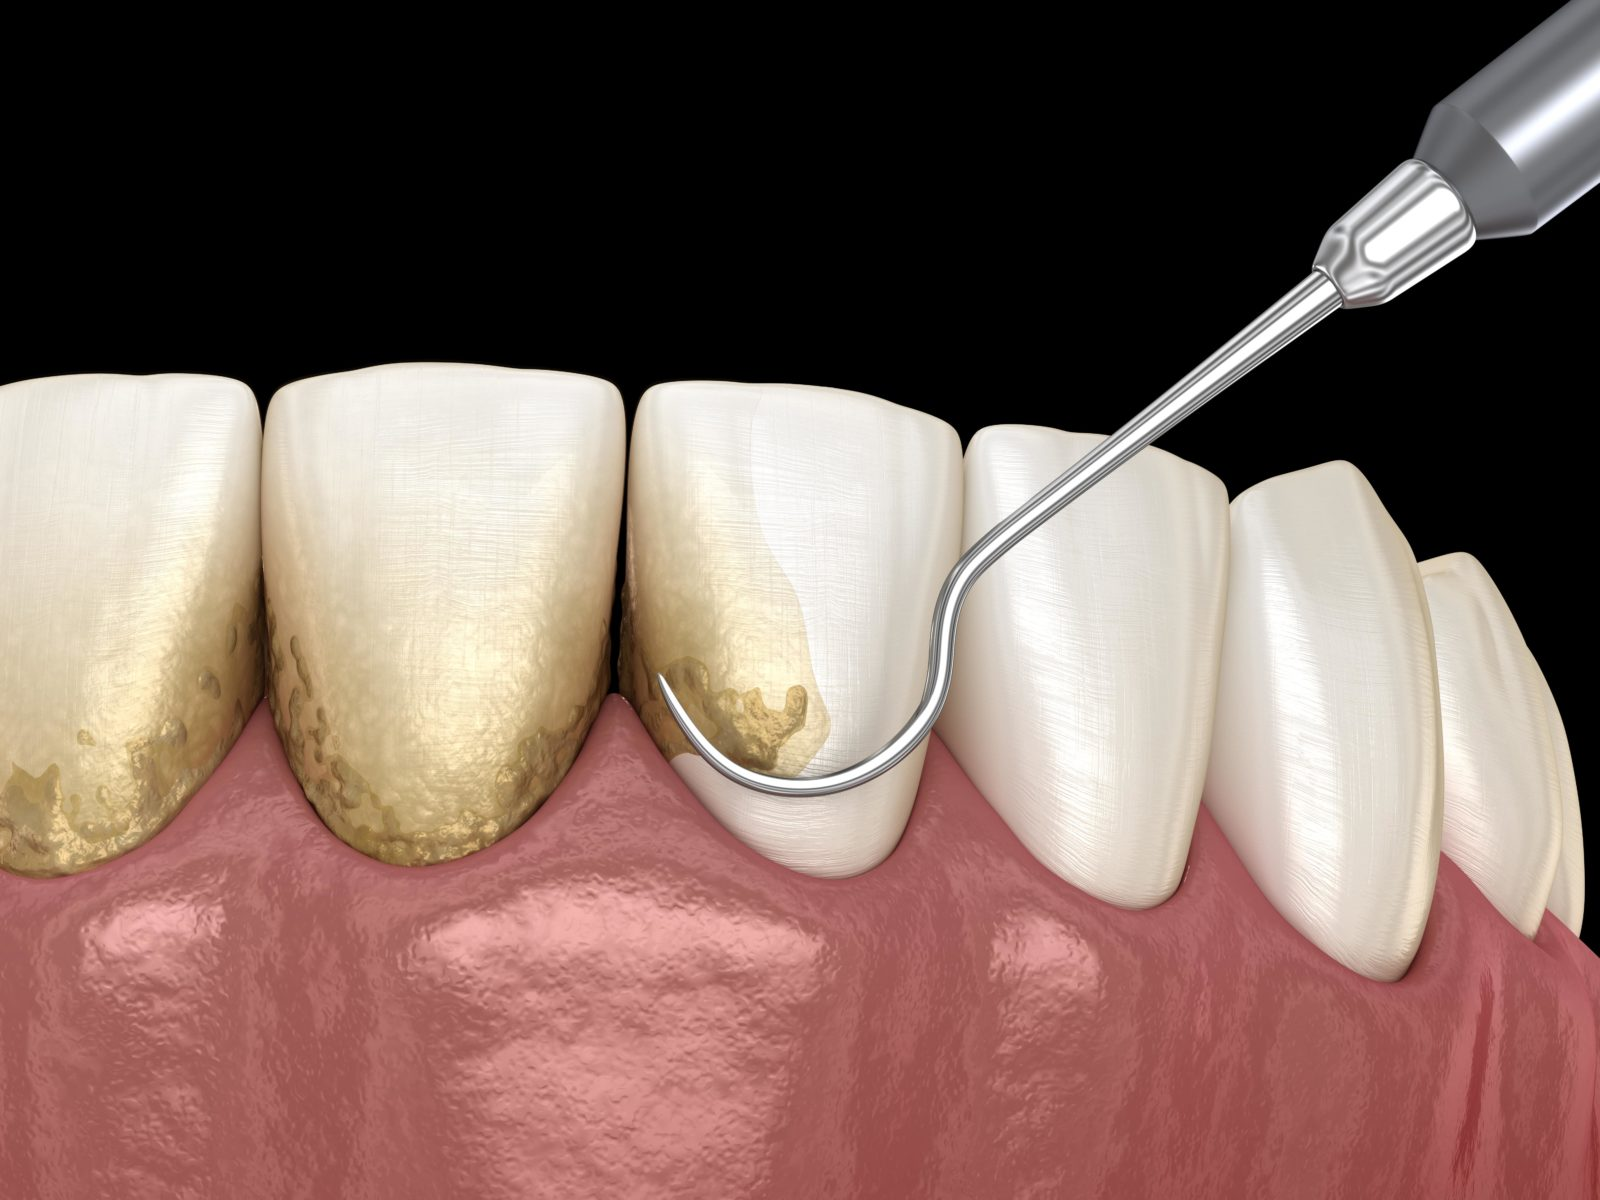 tooth scaling during dental cleaning